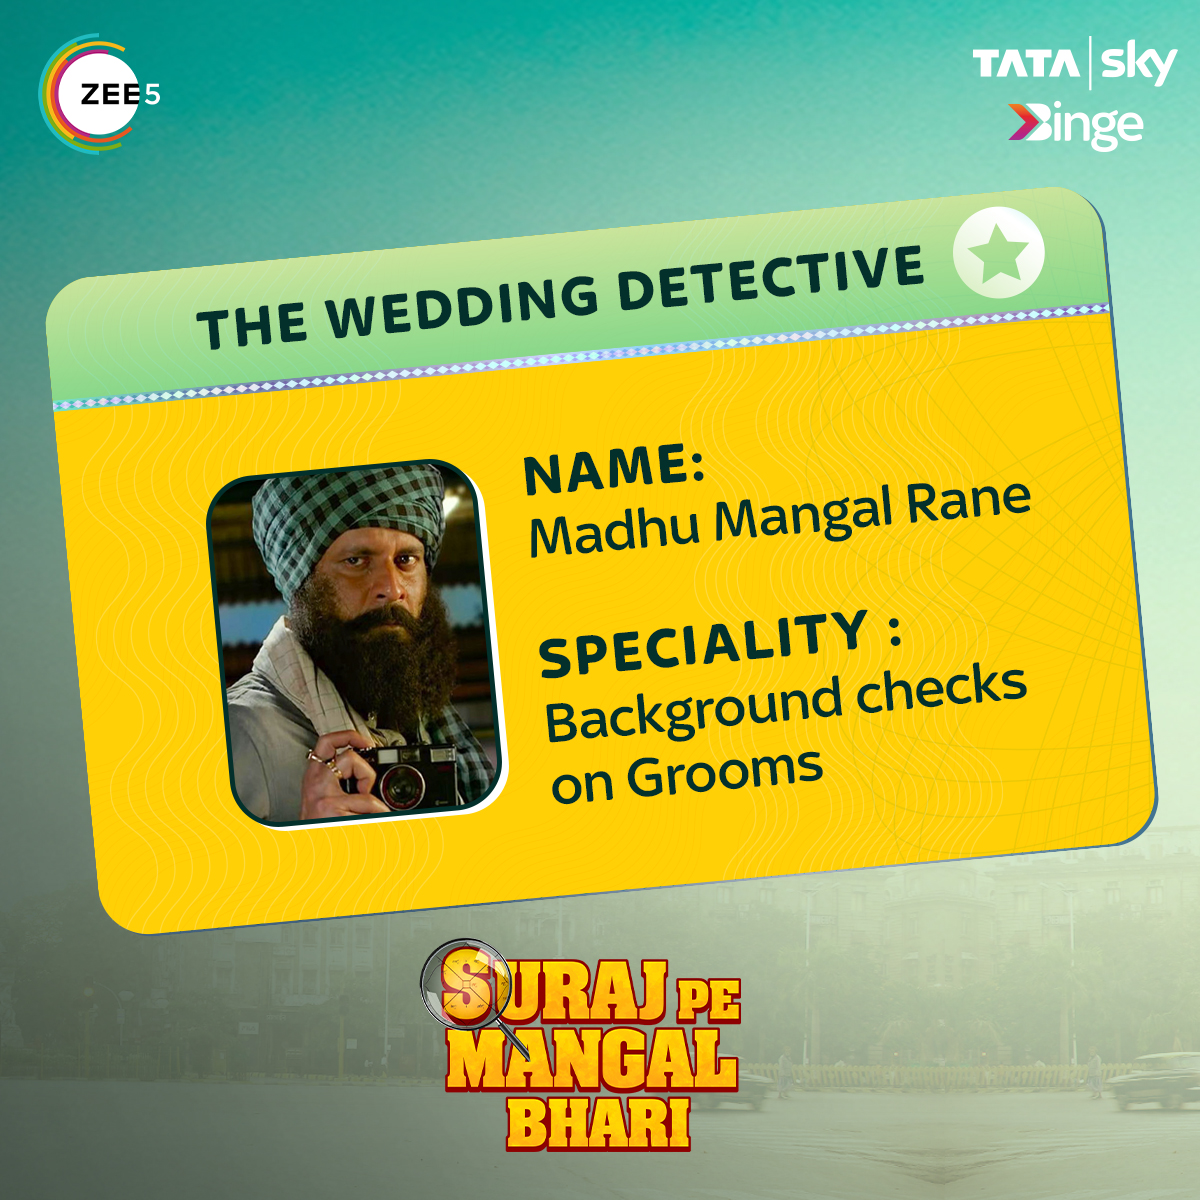 In a world without social media, he was the only hope for couples to get a thorough background check on each other. Watch @ZEE5Premium Original film 'Suraj Pe Mangal Bhari' only on the Big Screen of your TV with Tata Sky Binge.